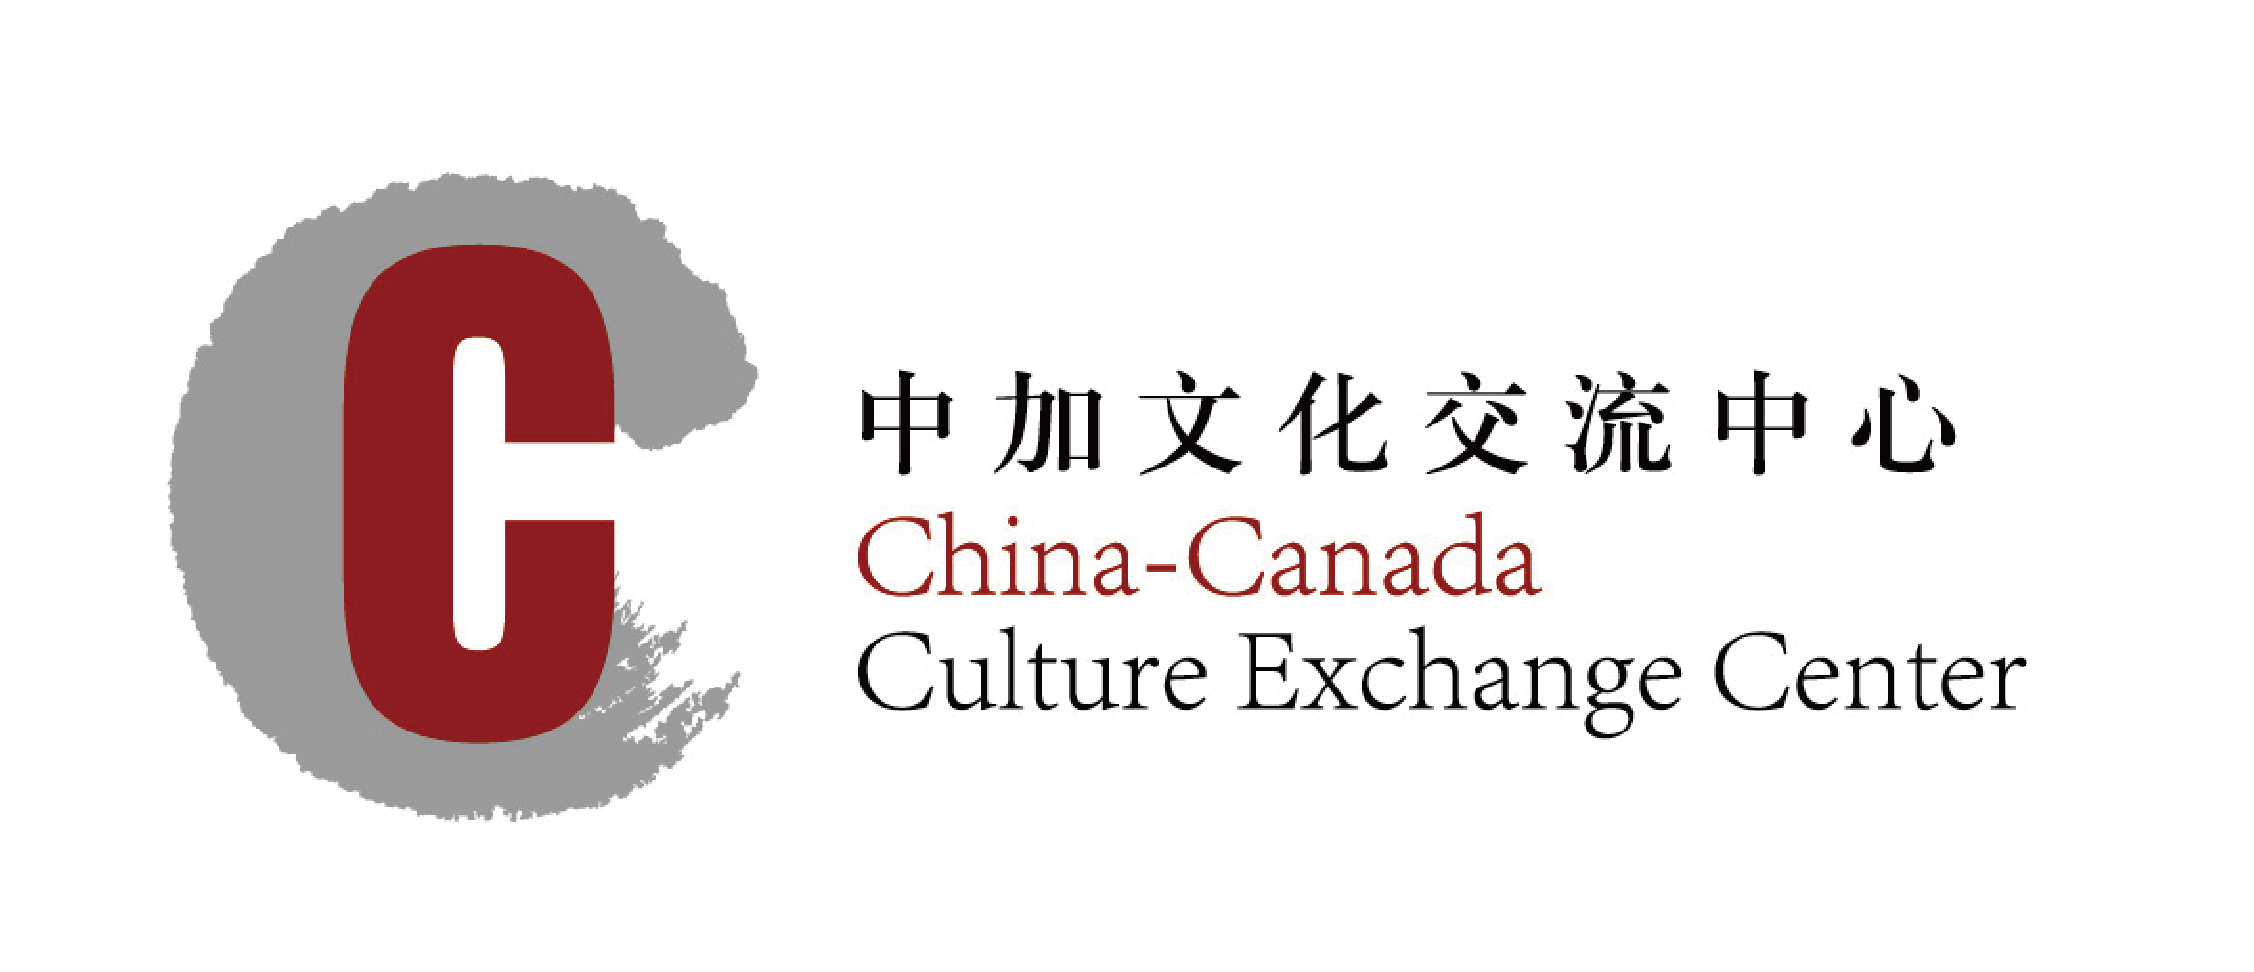 China-Canada Culture Exchange Center